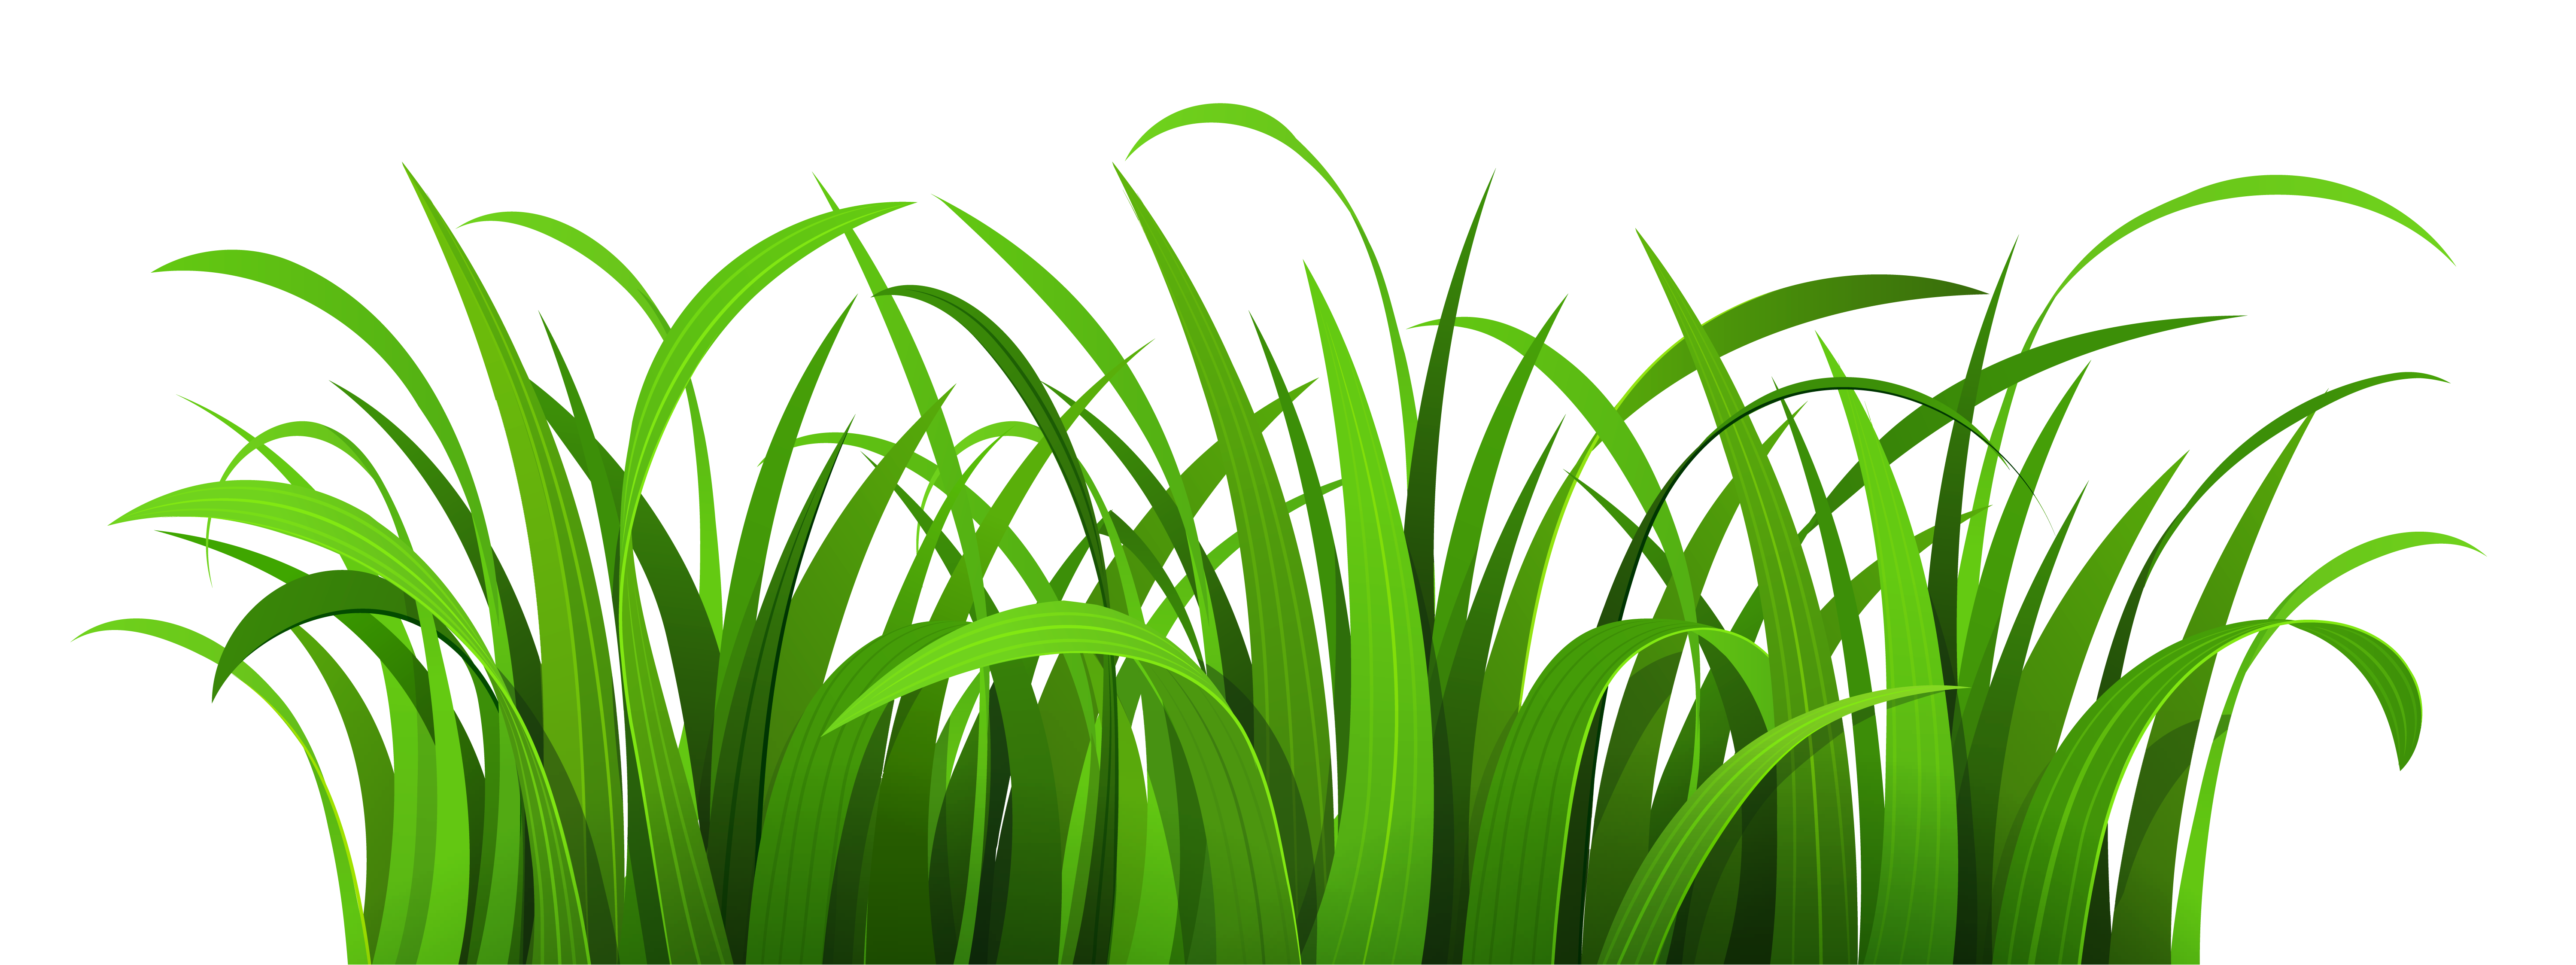 Lawn clipart Grass Clipart Images Clipart Green